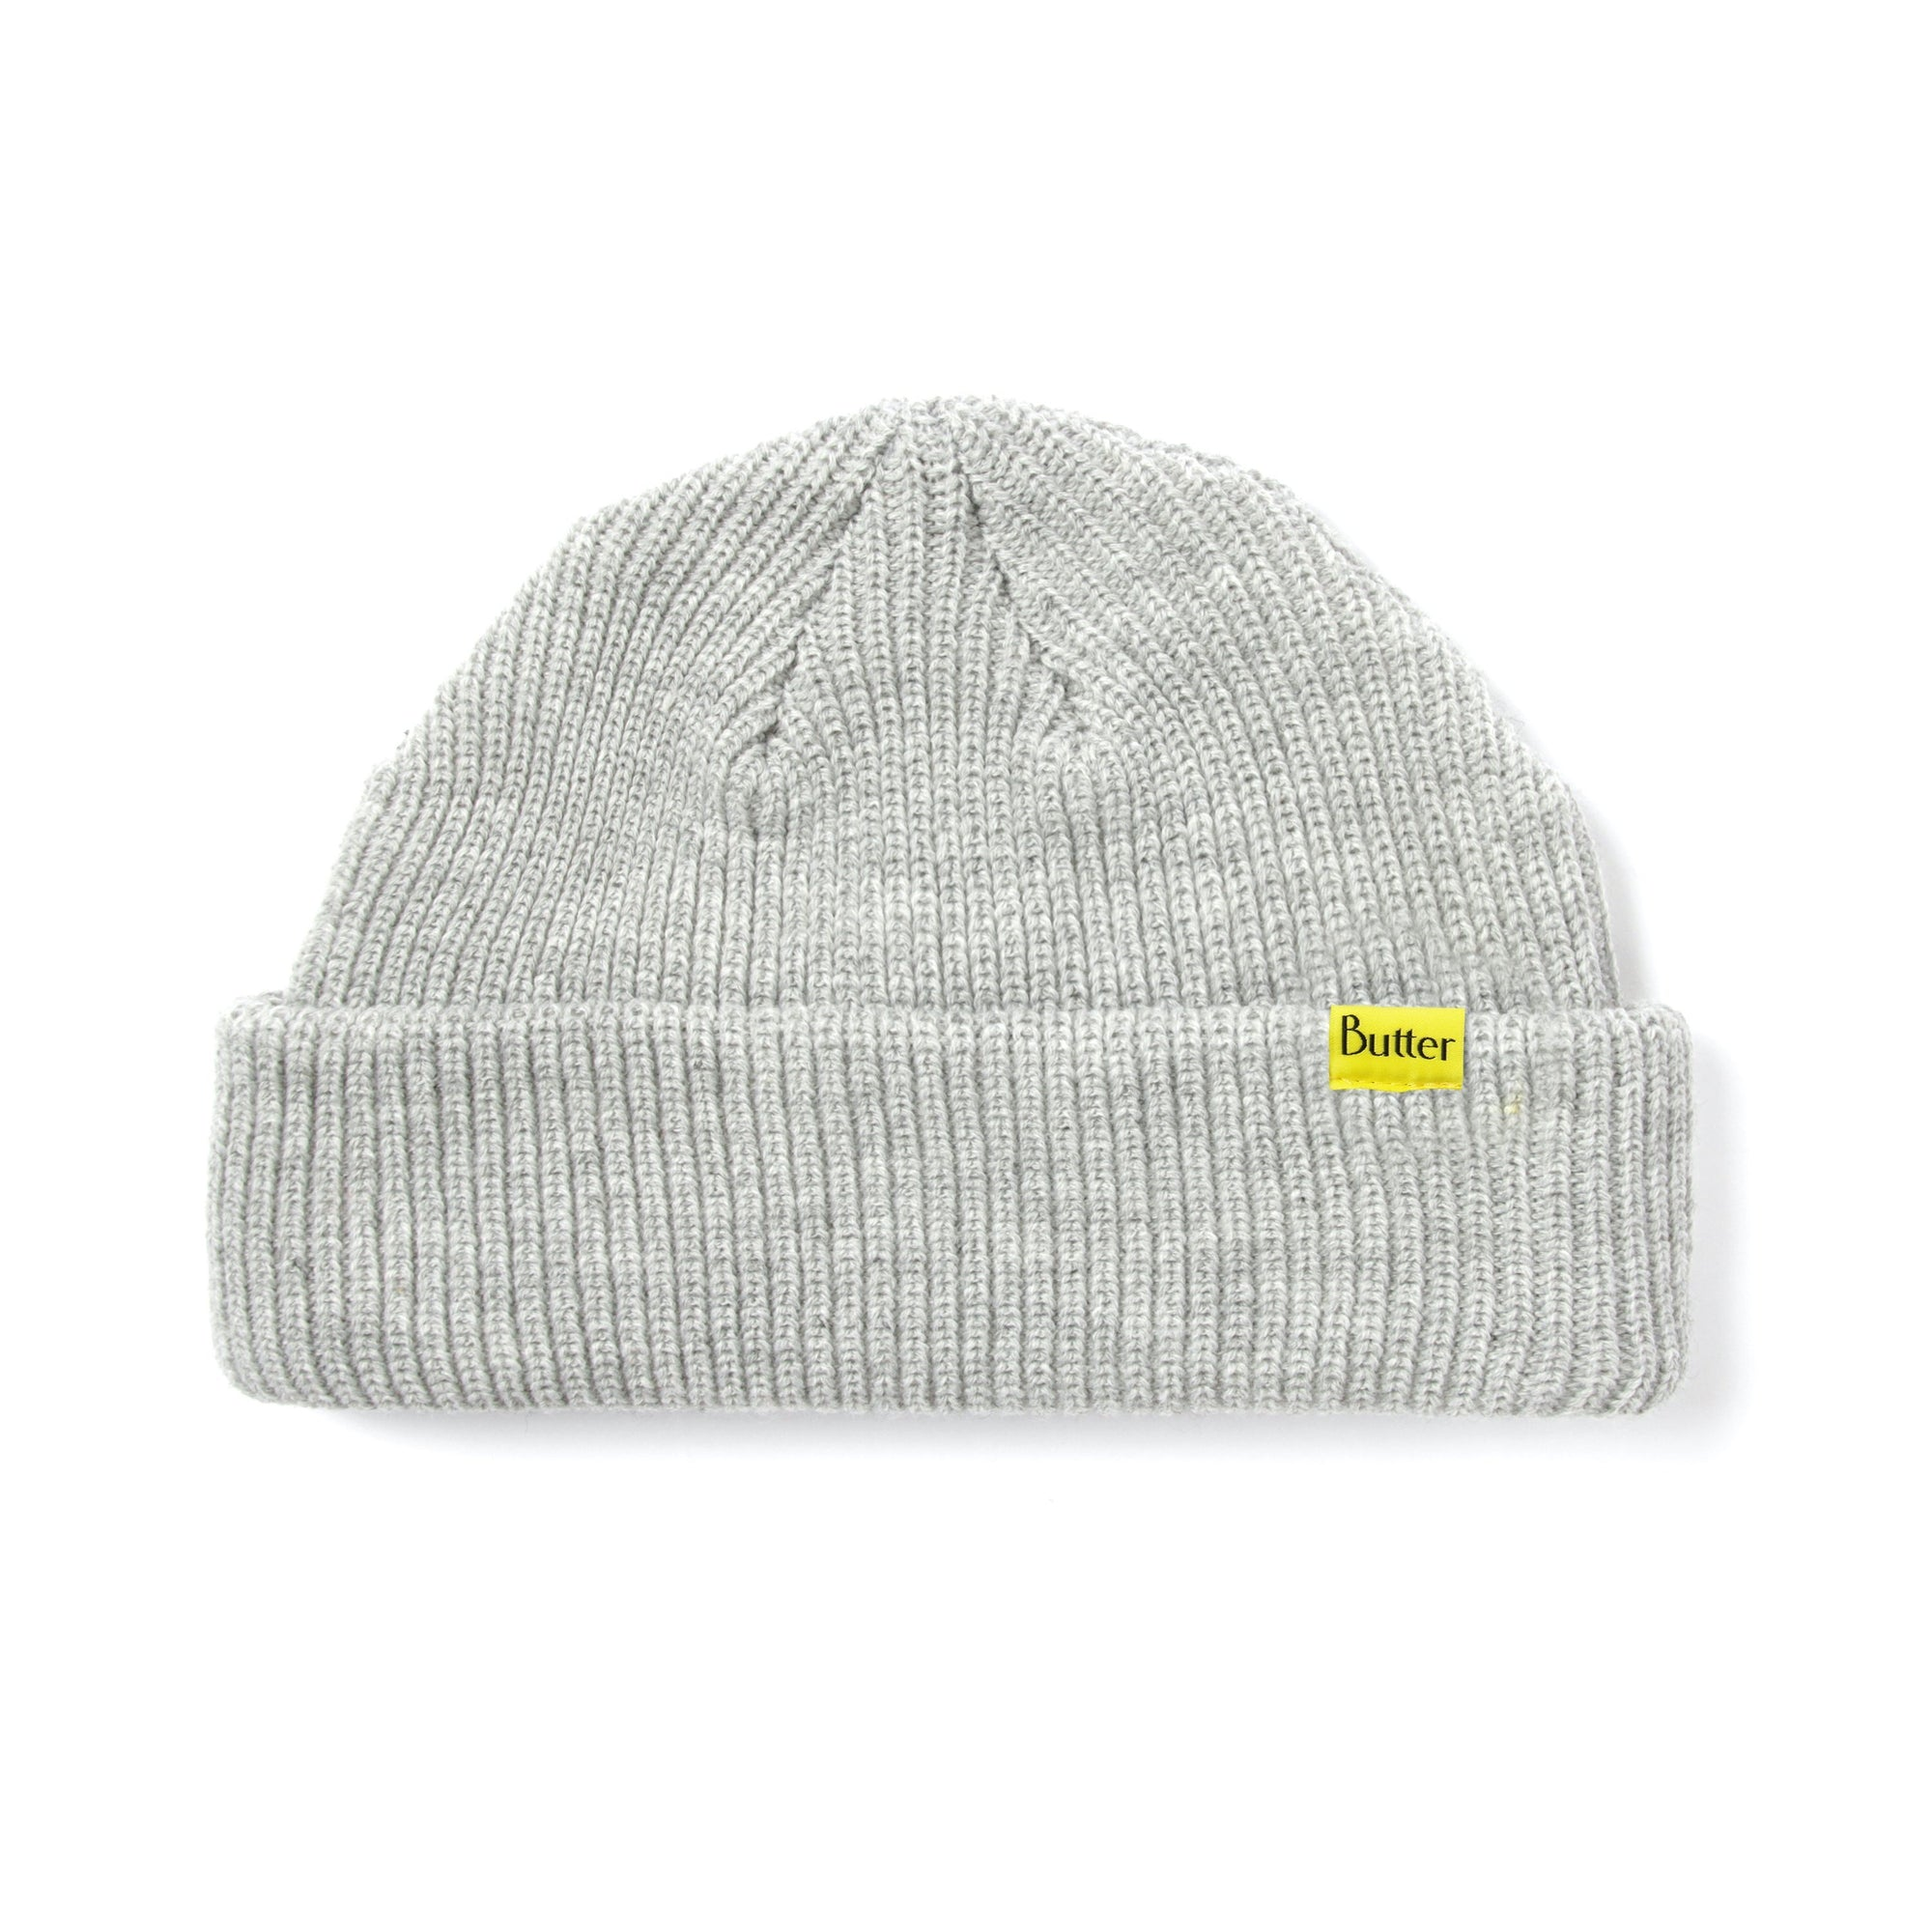 Butter Goods Wharfie Beanie Product Photo #1